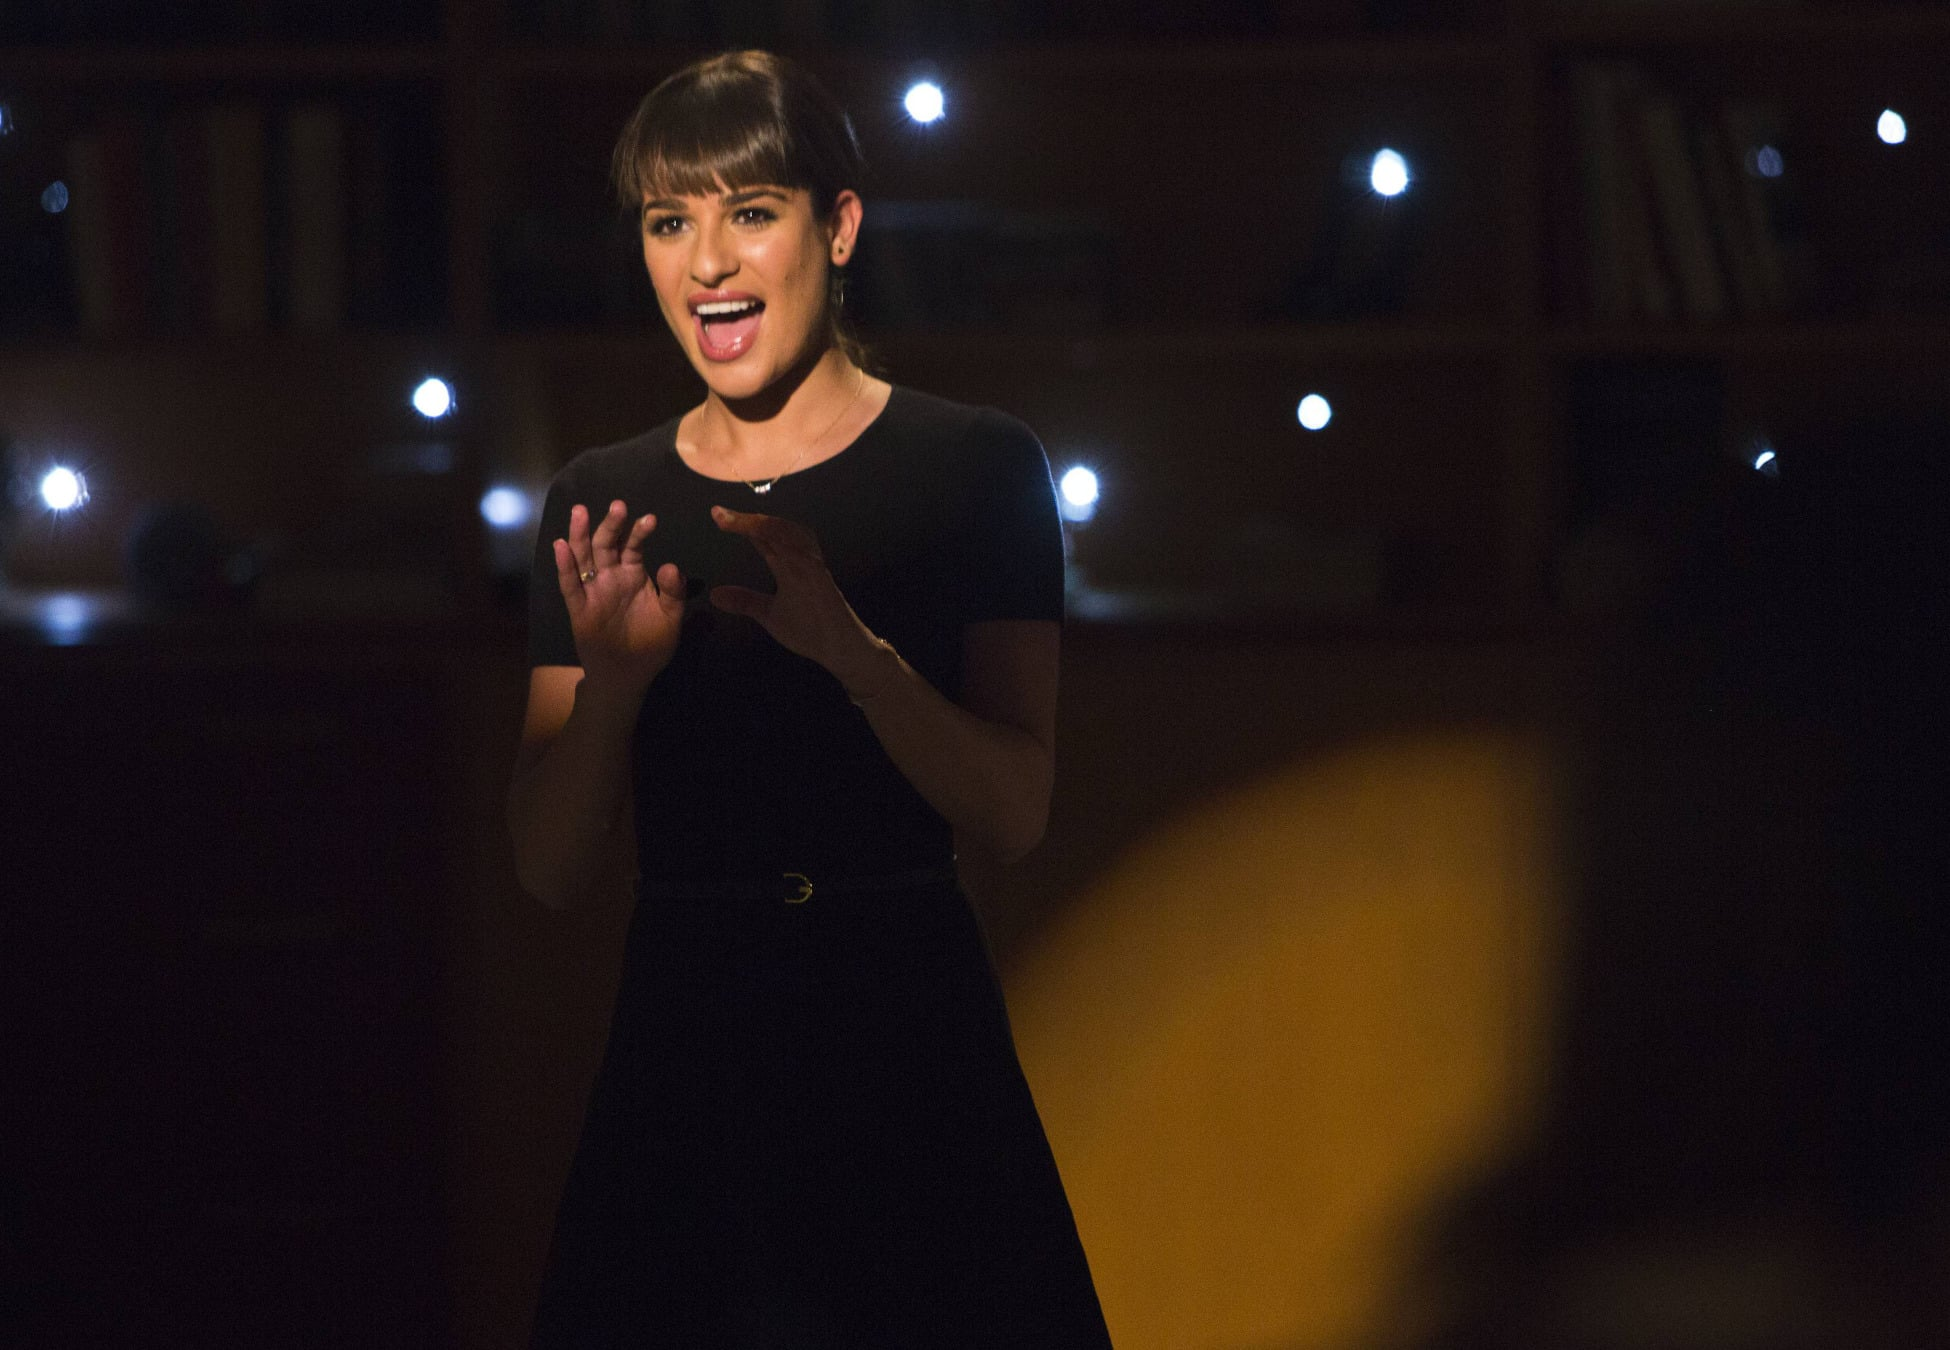 Rachel (Lea Michele) returns to McKinley High in the episode.